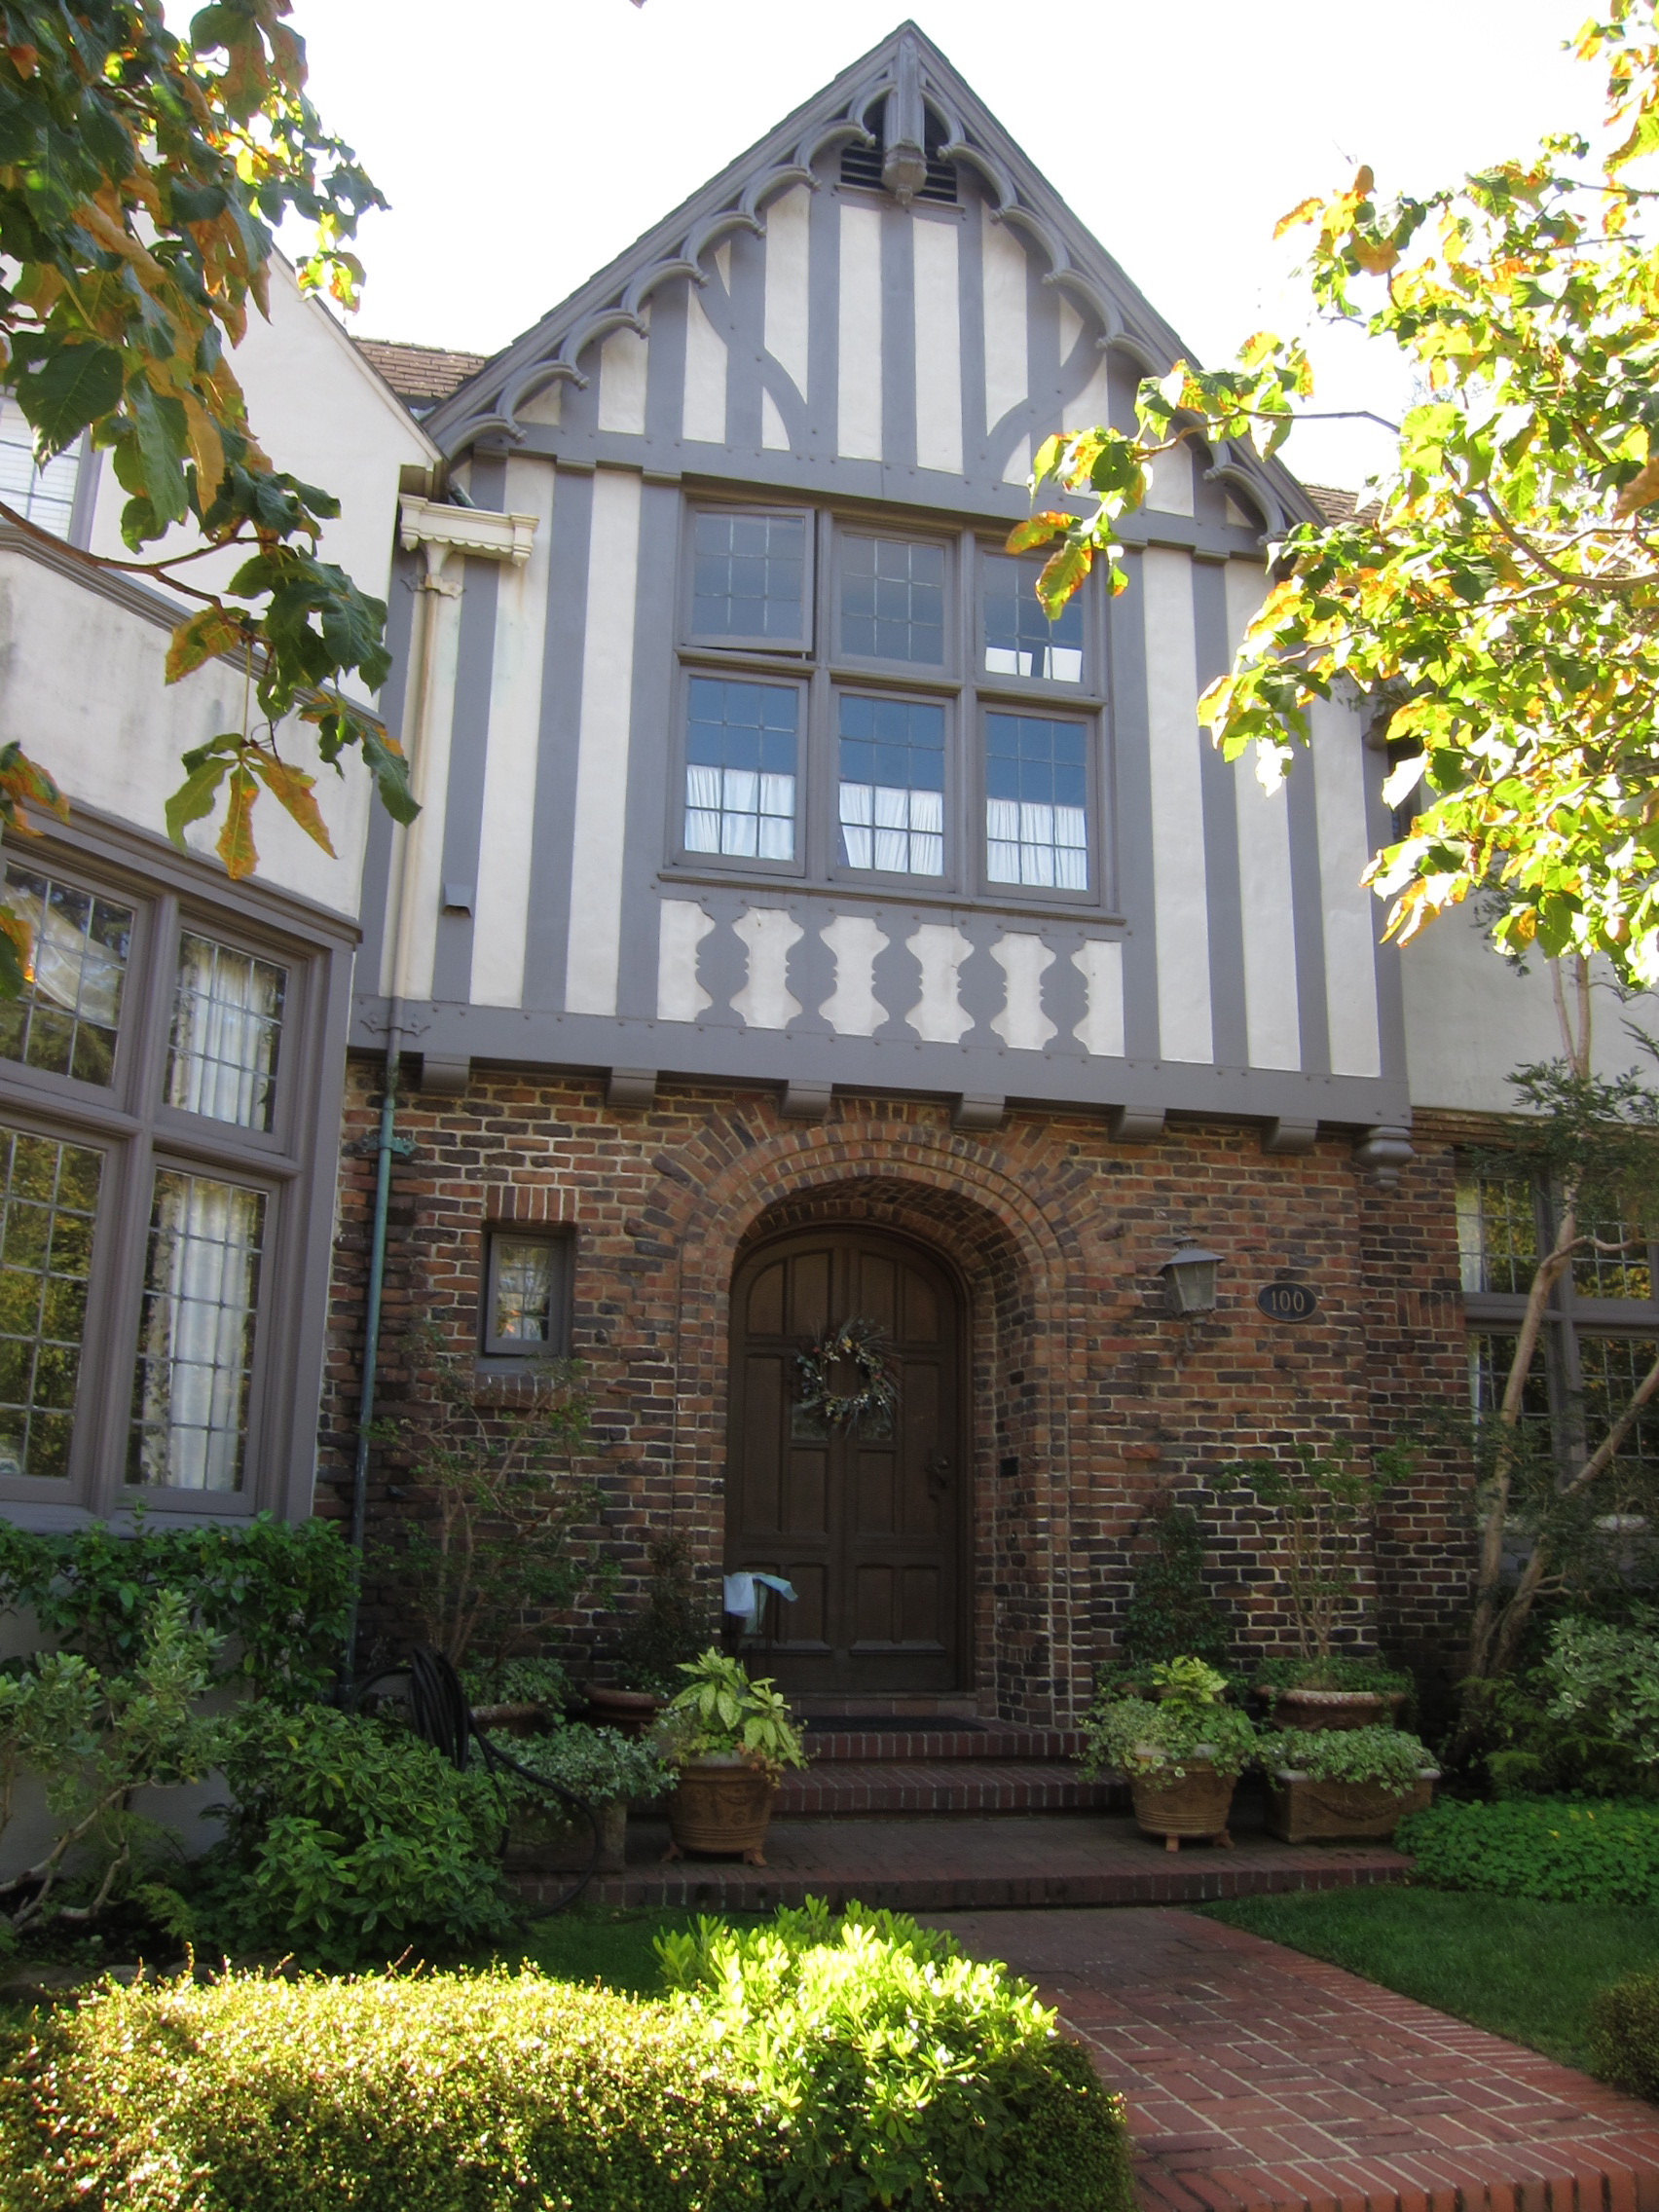 Tudoring lessons from piedmont living x design - Online exterior house color tool ...